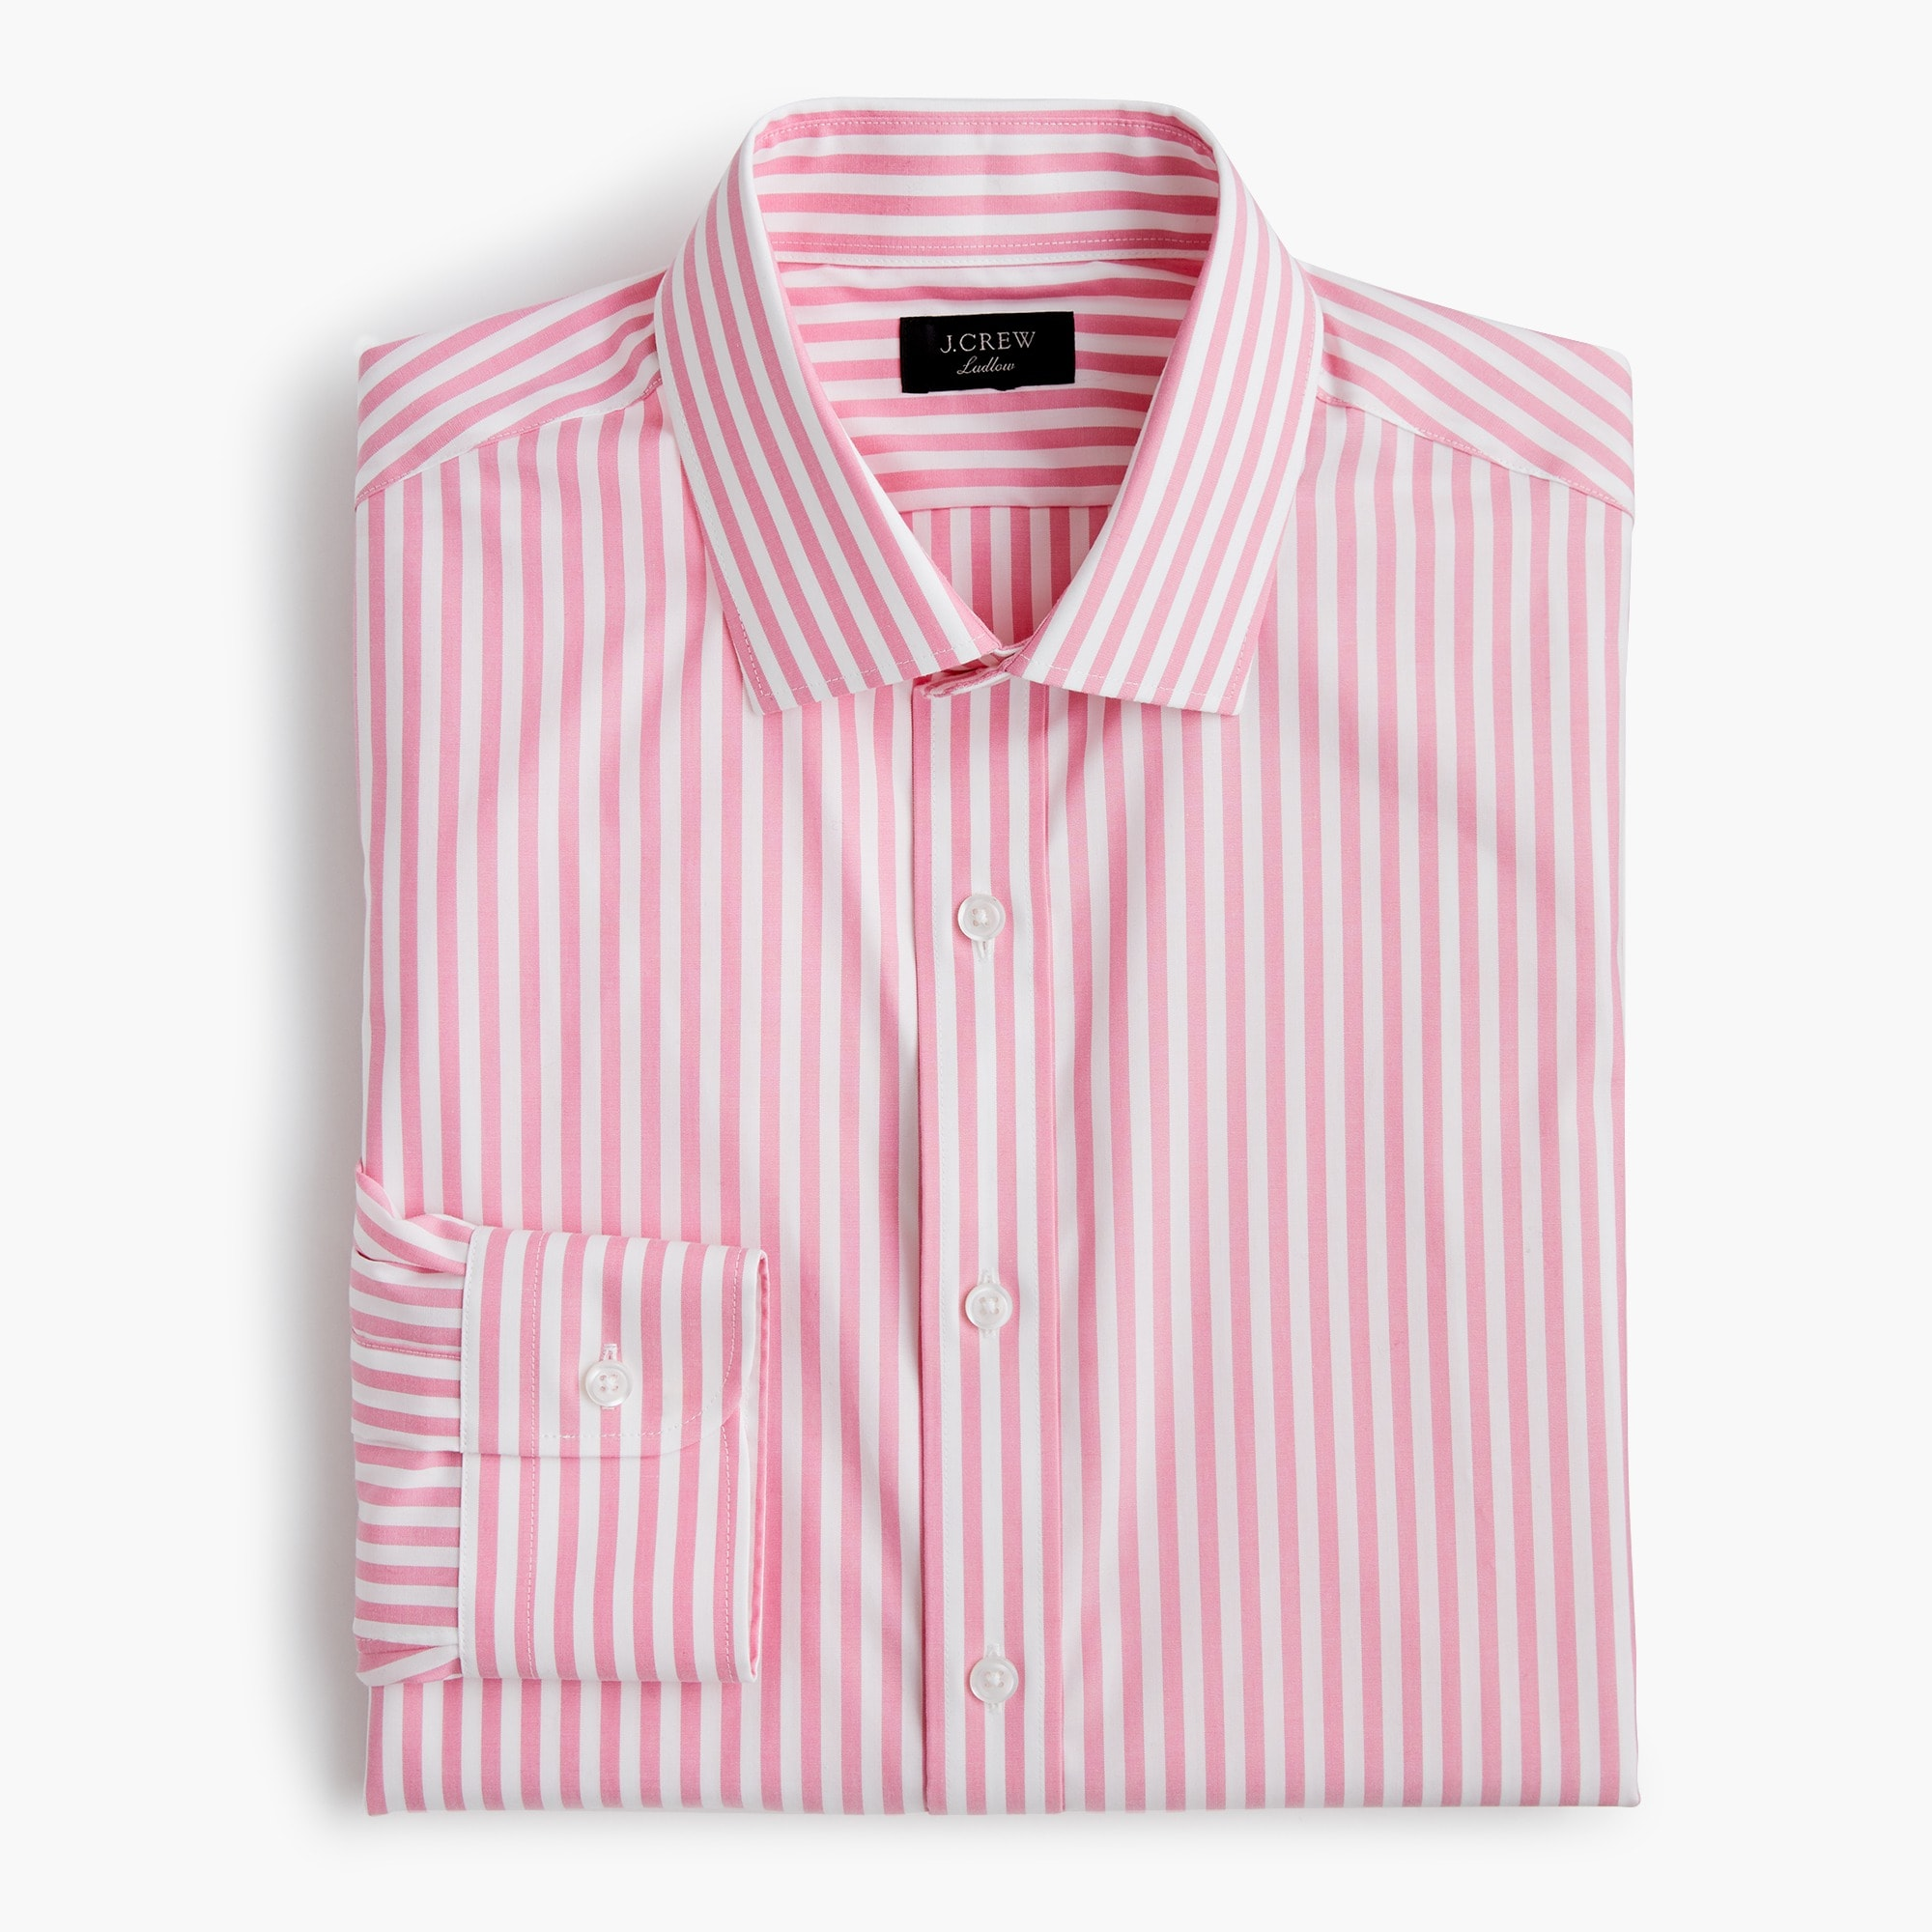 Ludlow Slim-fit stretch two-ply easy-care cotton dress shirt in pink stripe